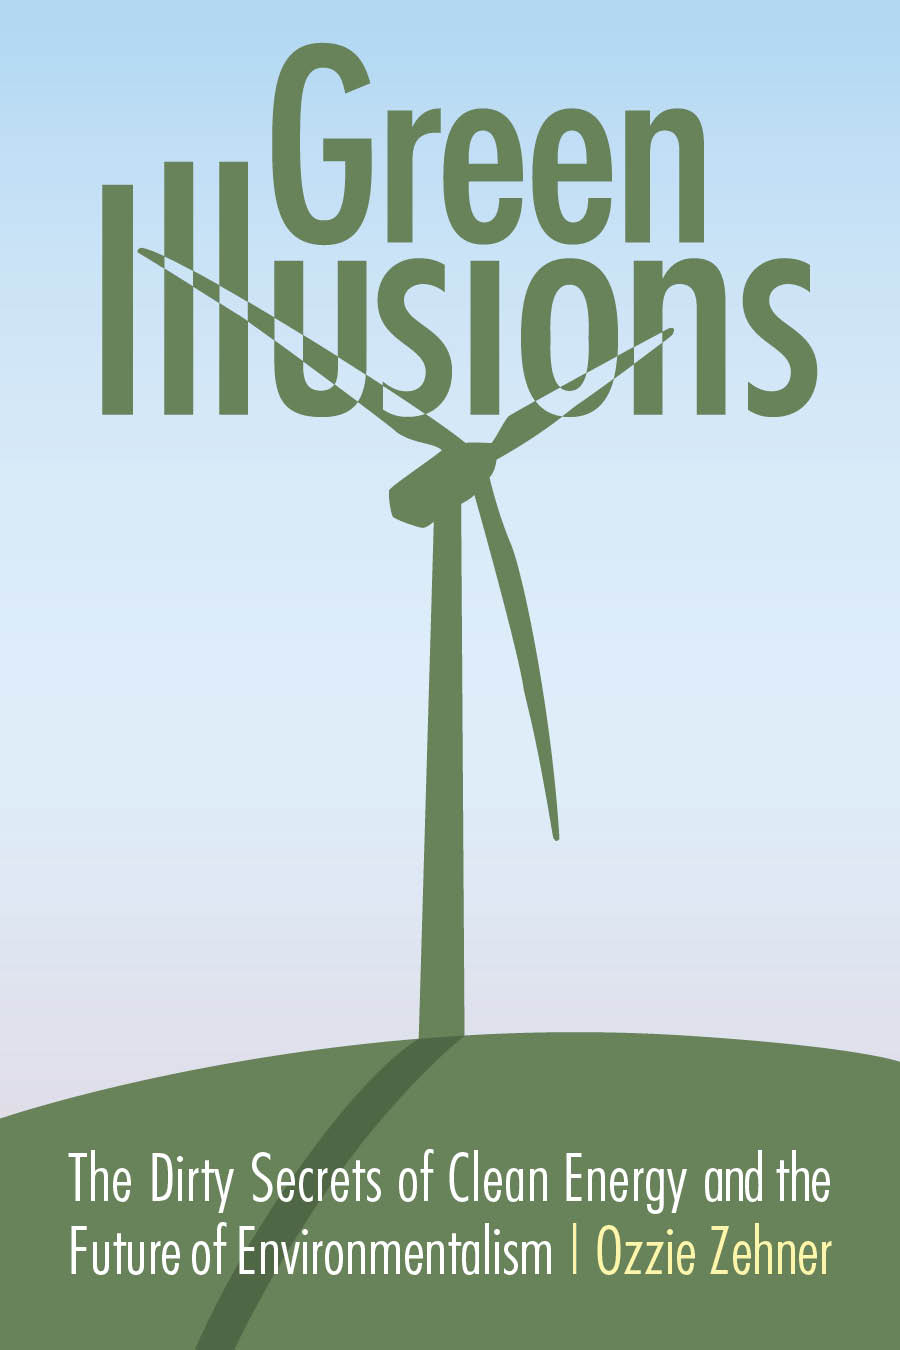 https://i1.wp.com/www.greenillusions.org/wp-content/uploads/2011/09/Cover-Green-Illusions.jpg